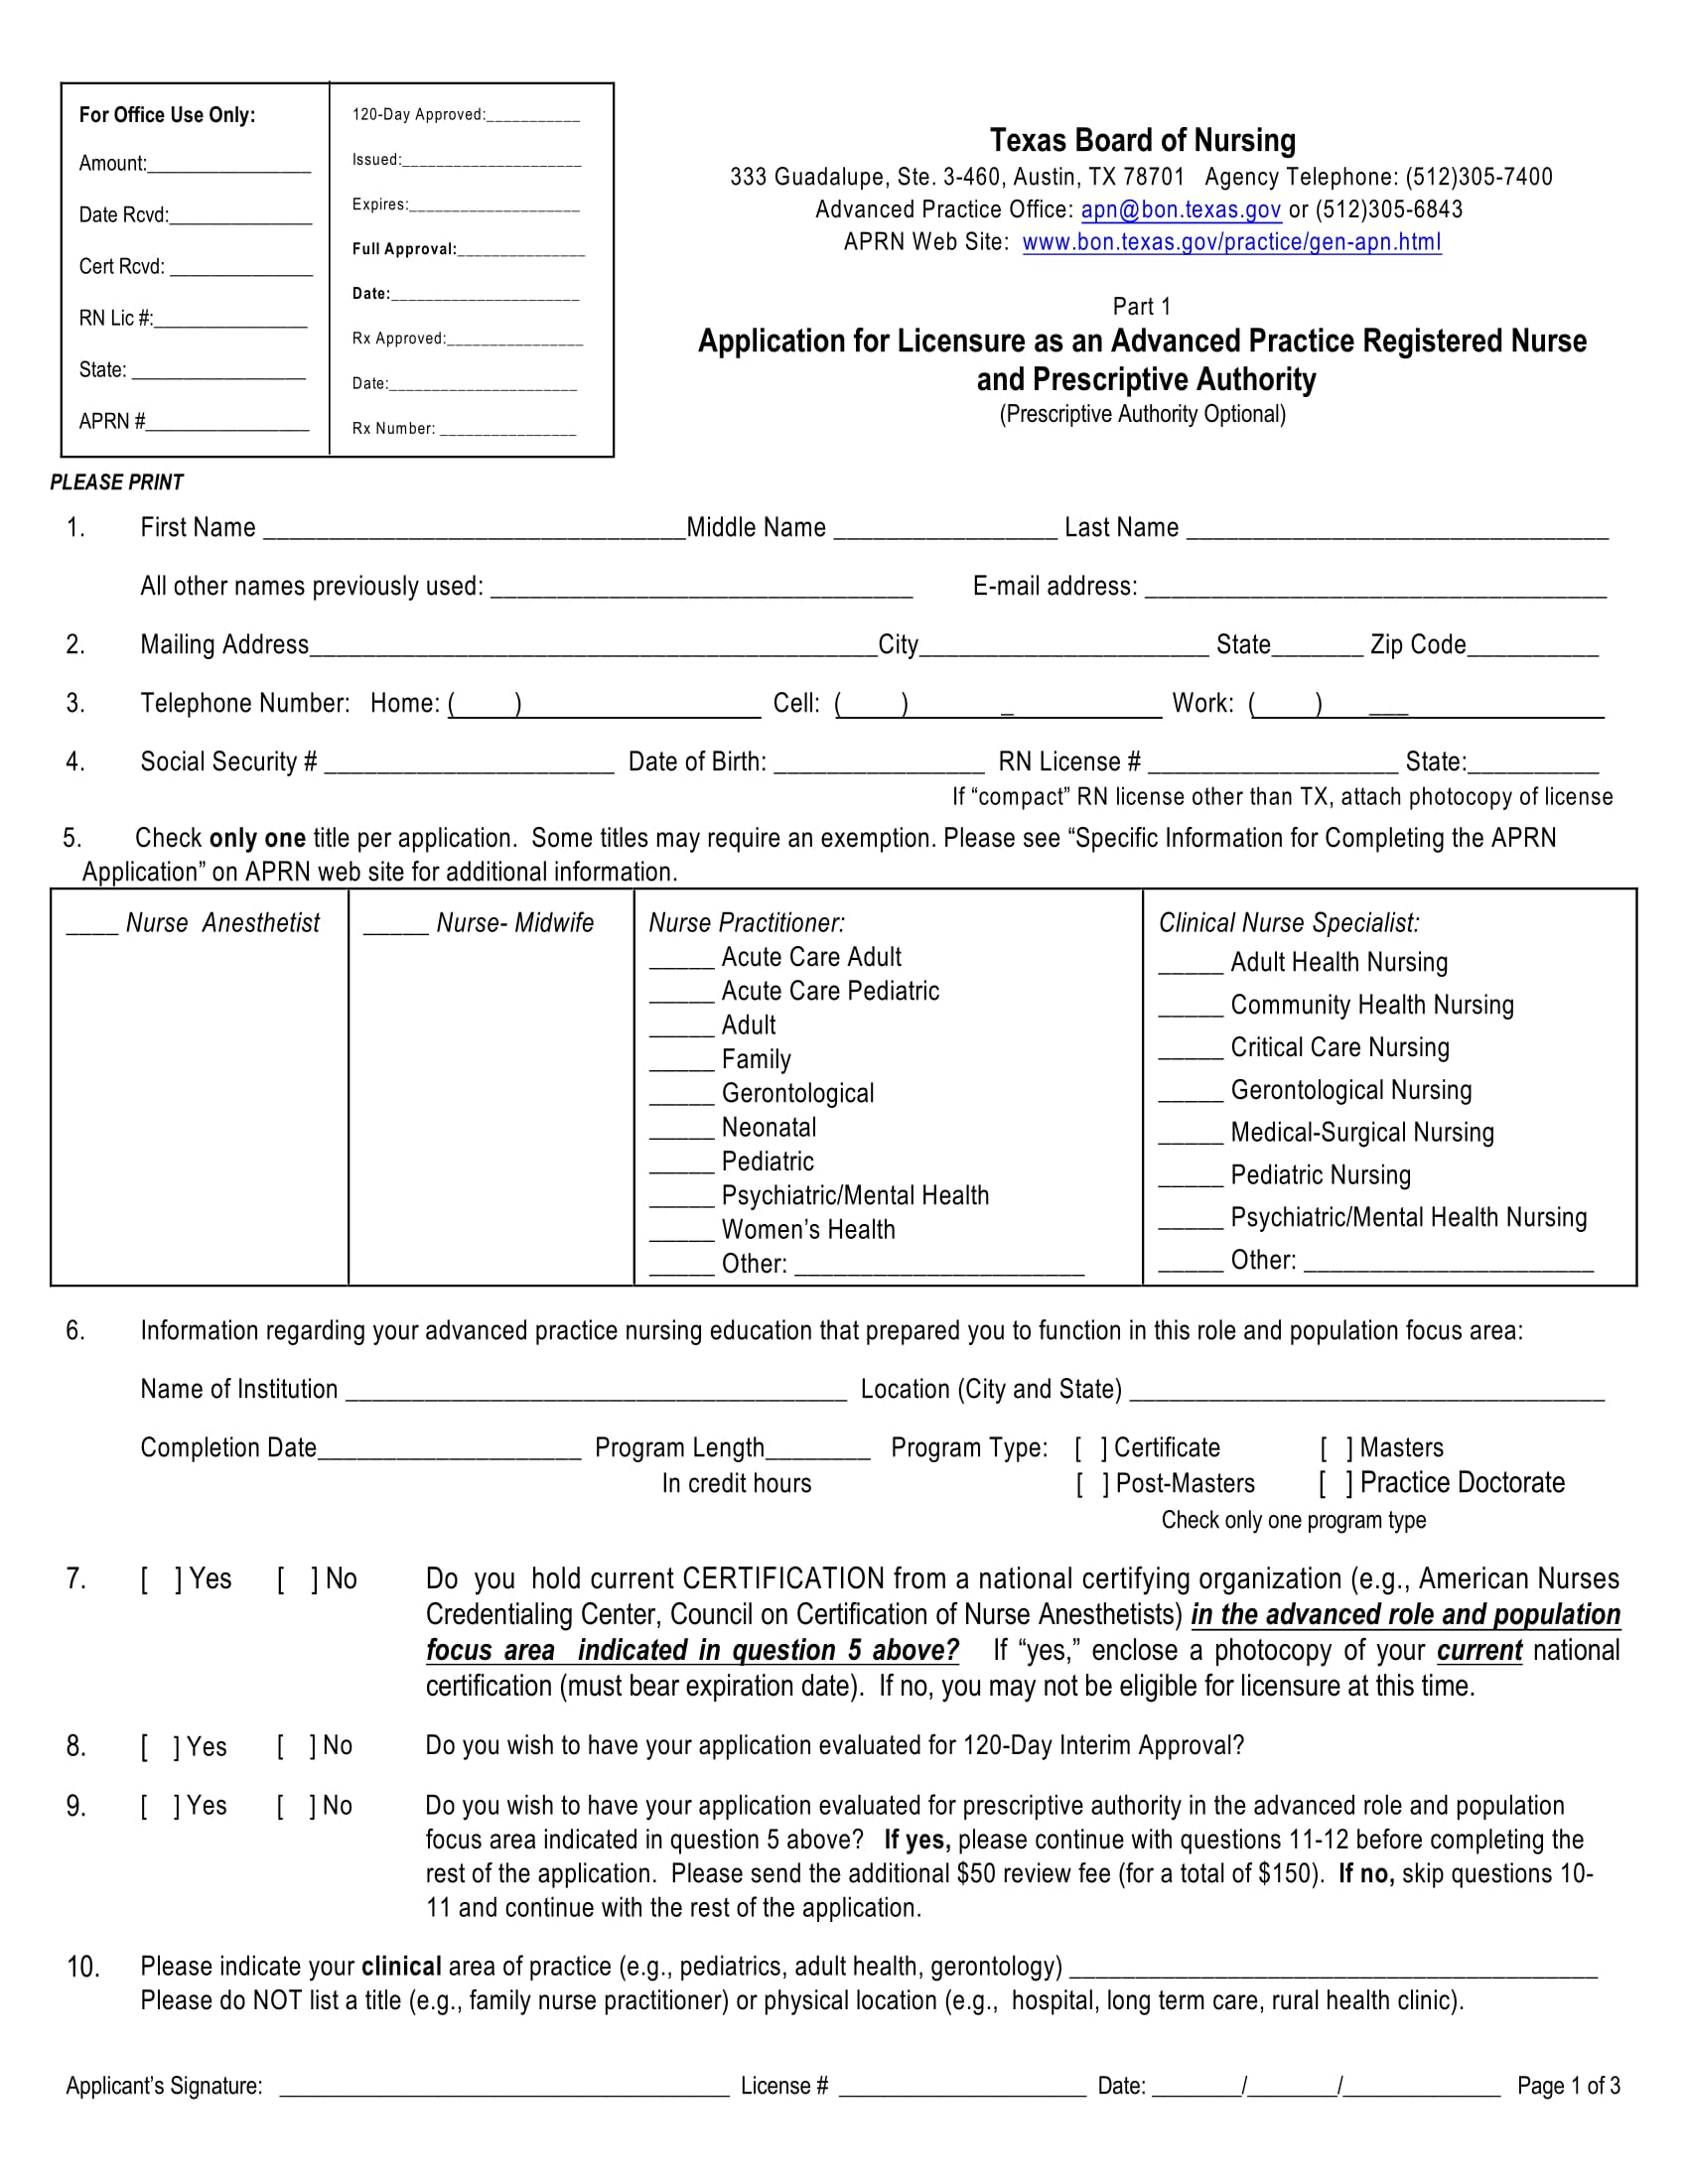 application for licensure as an advanced practice registered nurse